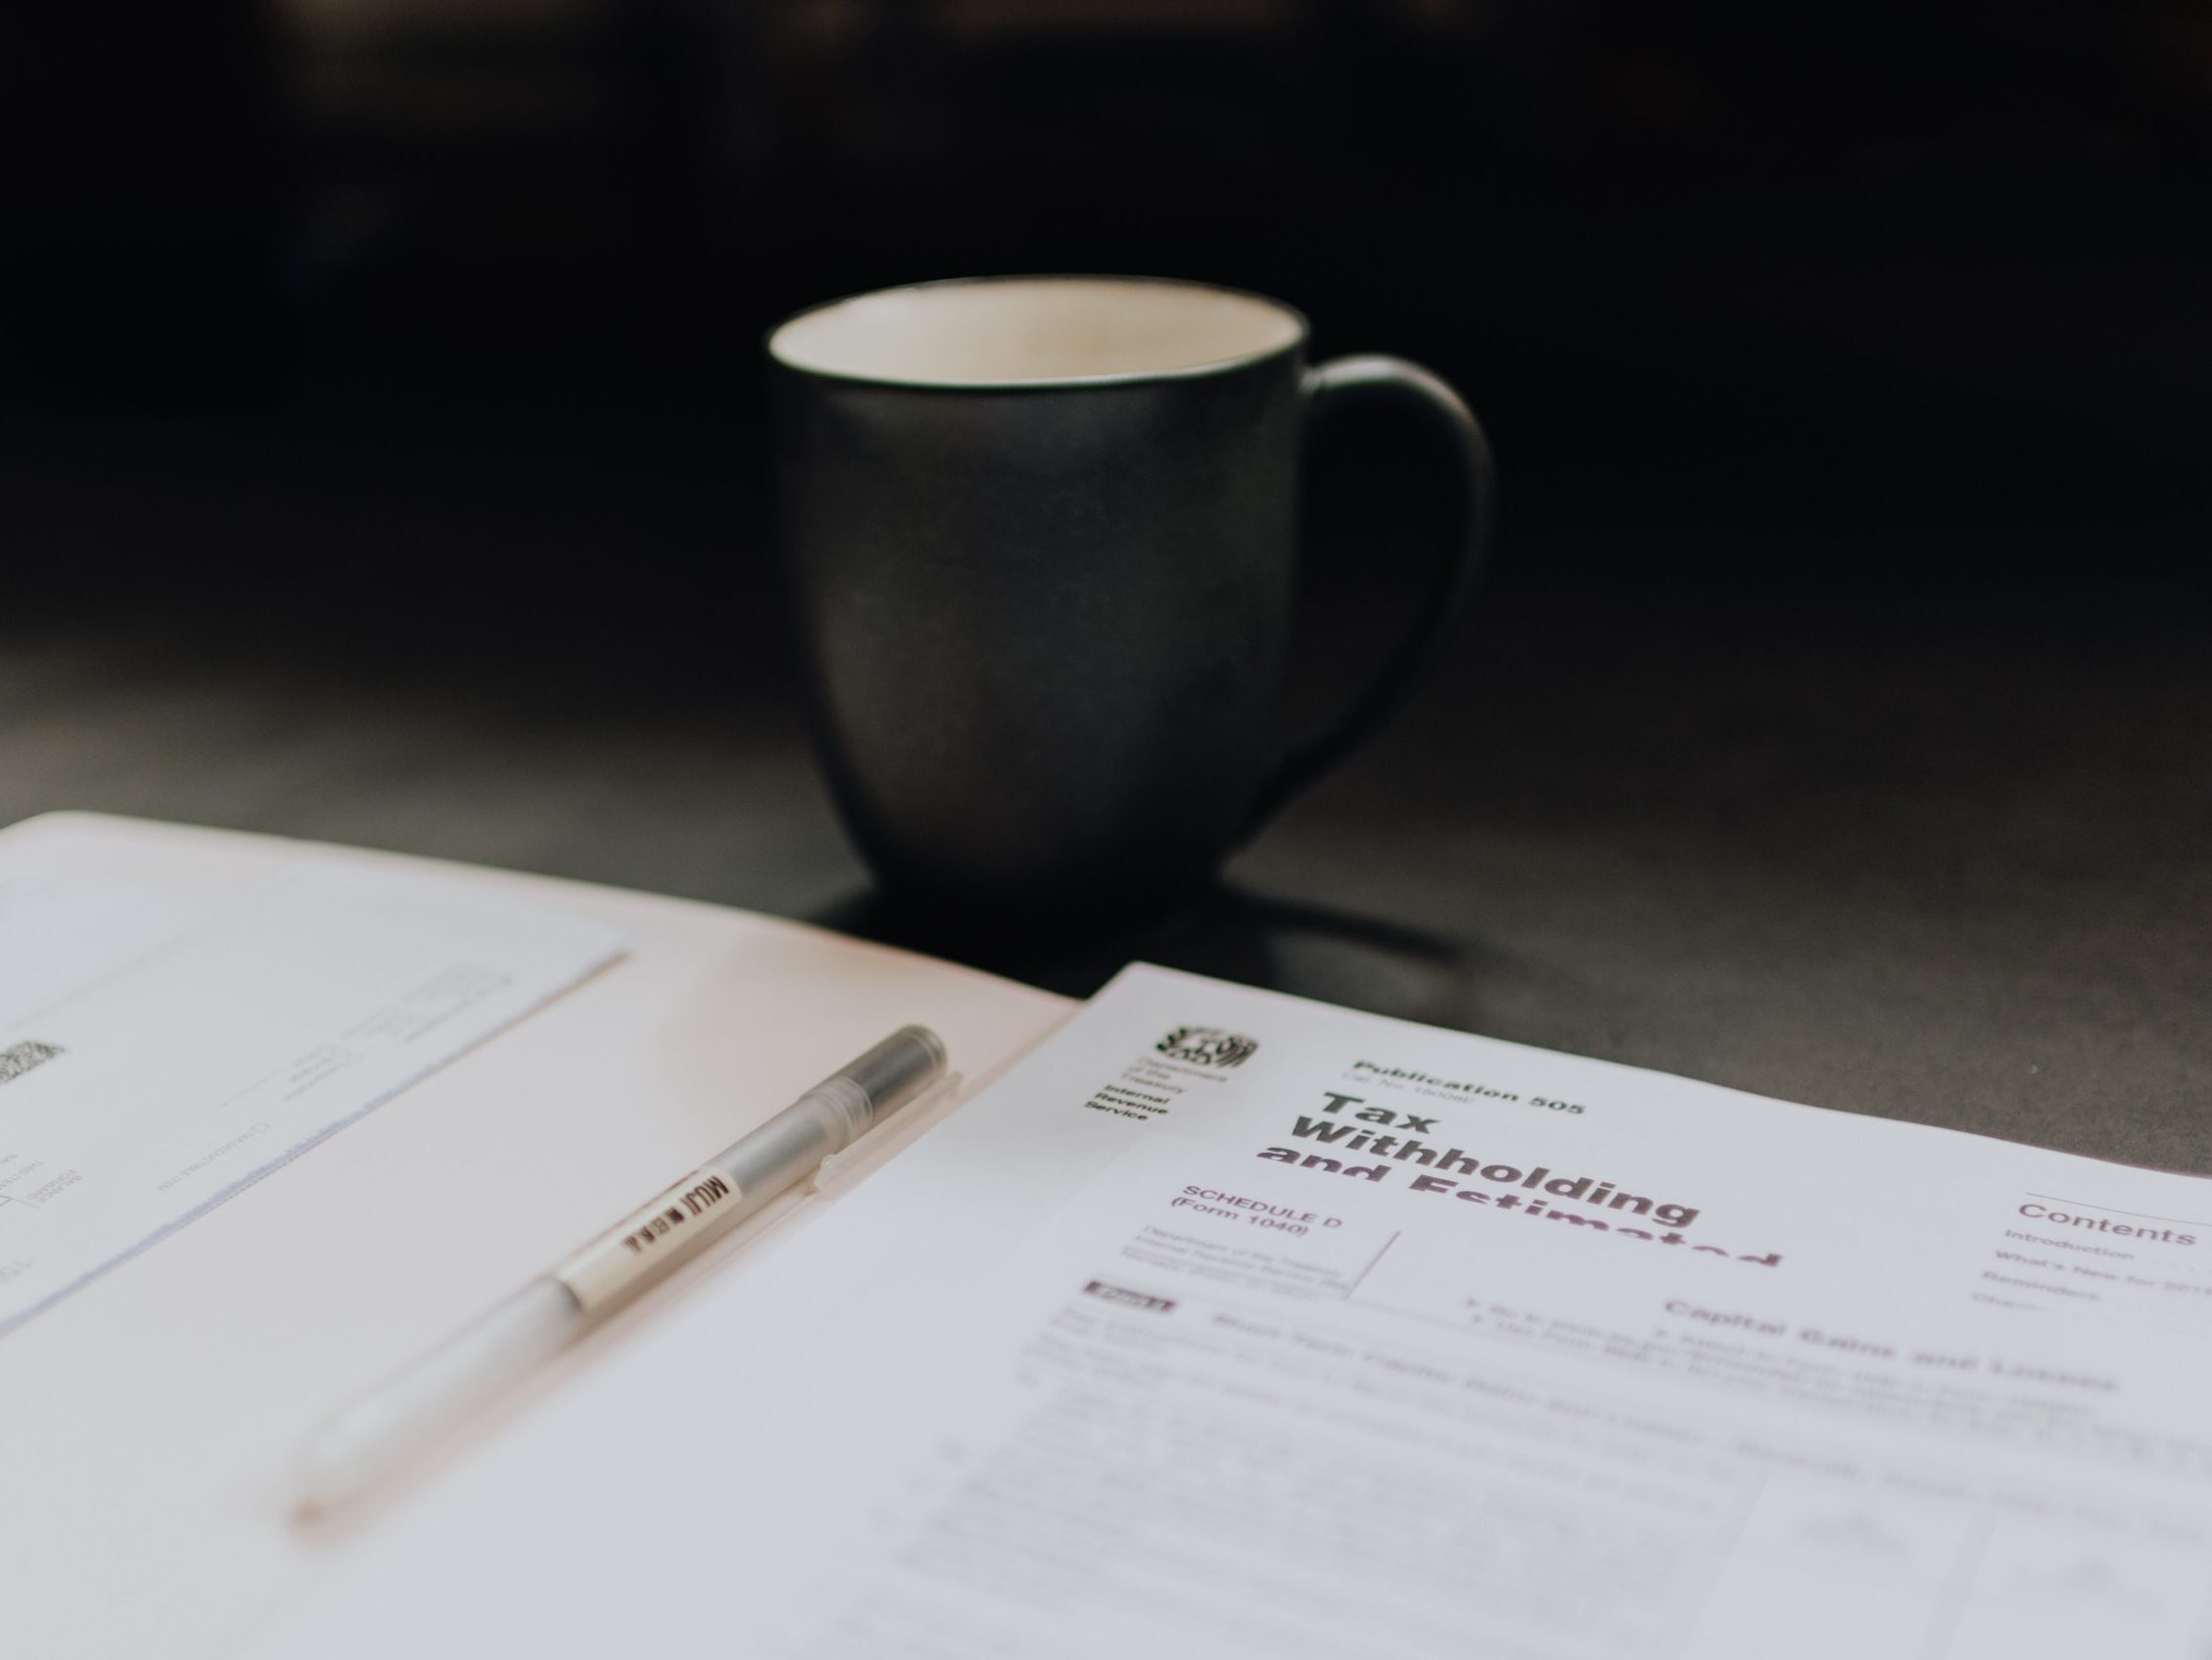 coffee mug near open folder with tax withholding paper